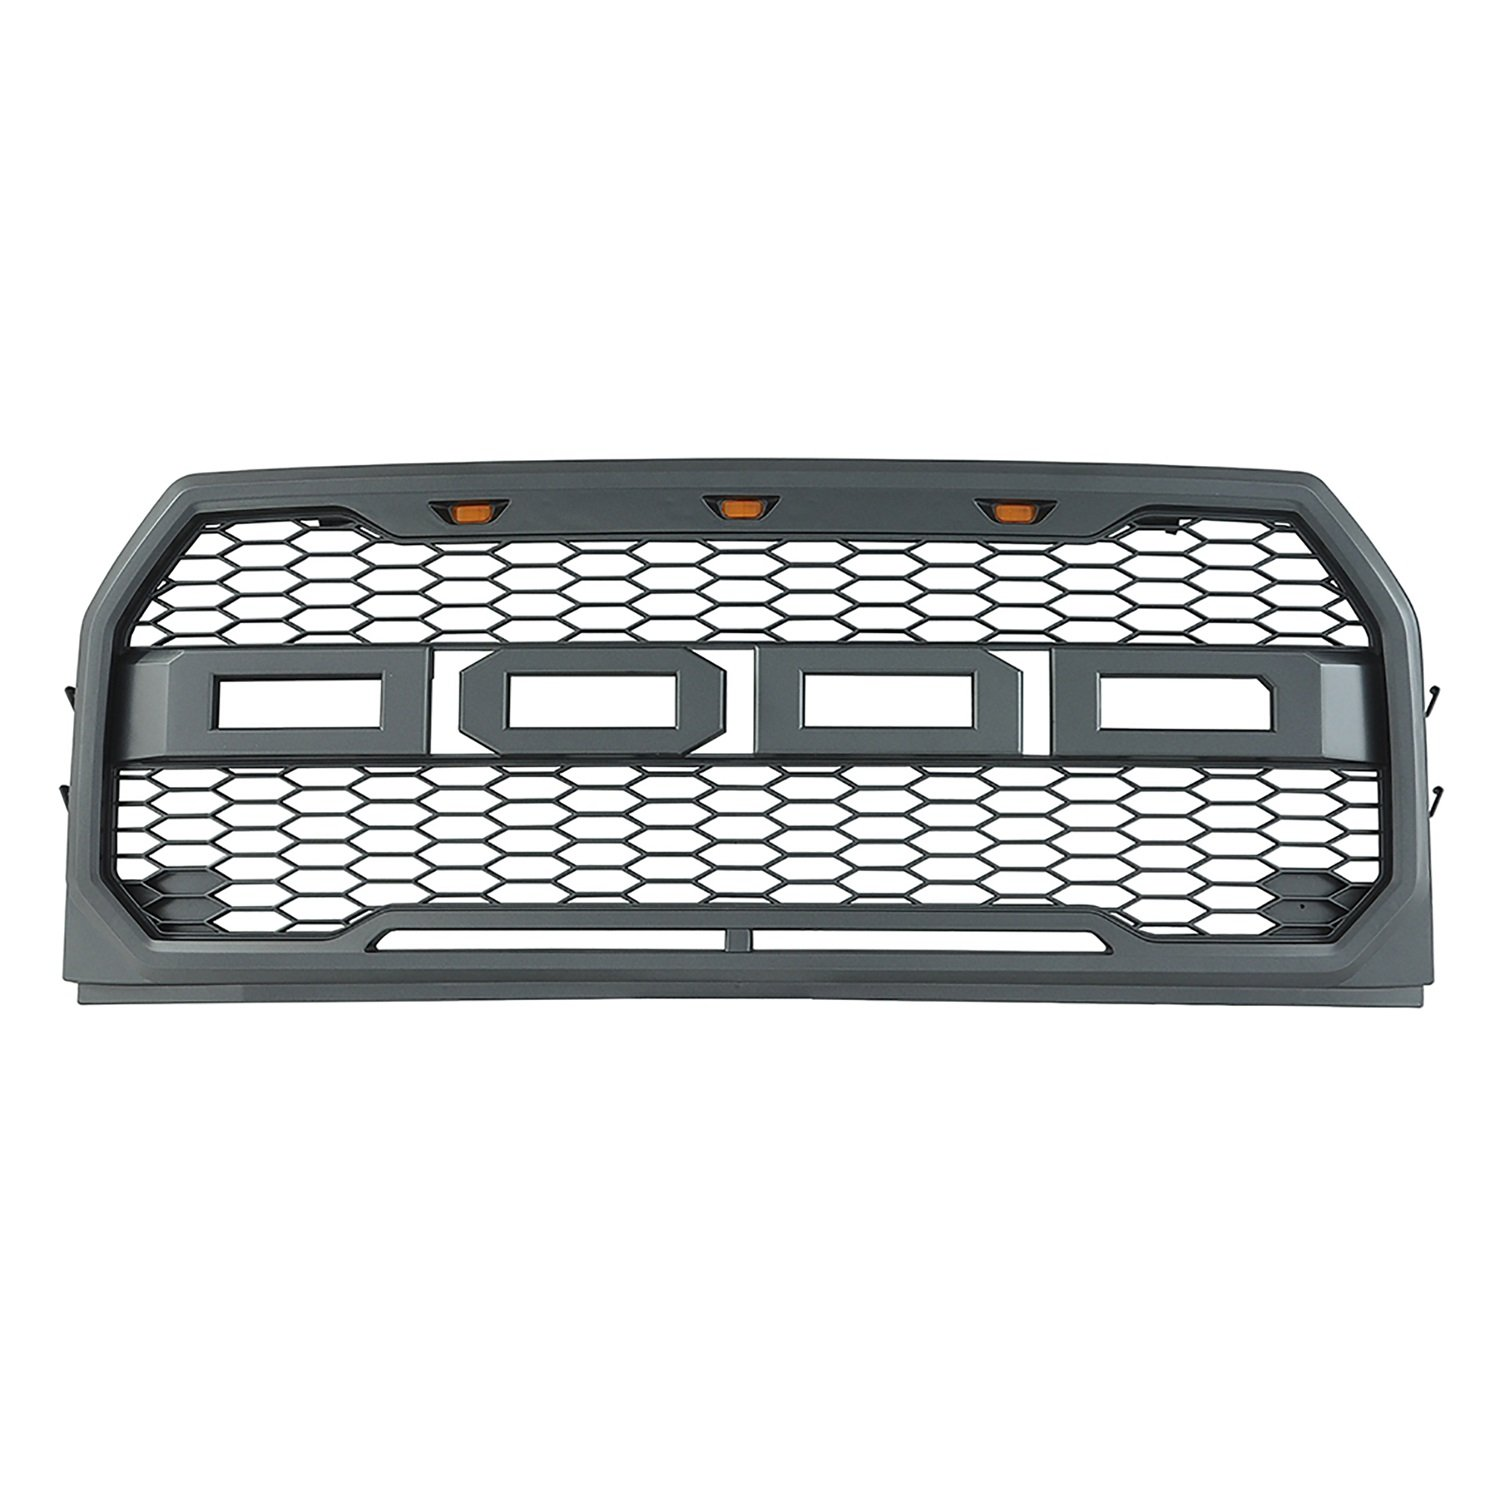 Paramount Restyling 41 0157 Raptor Style Packaged Grille Wire Harness Black Molding 15 16 Ford F 150 Automotive